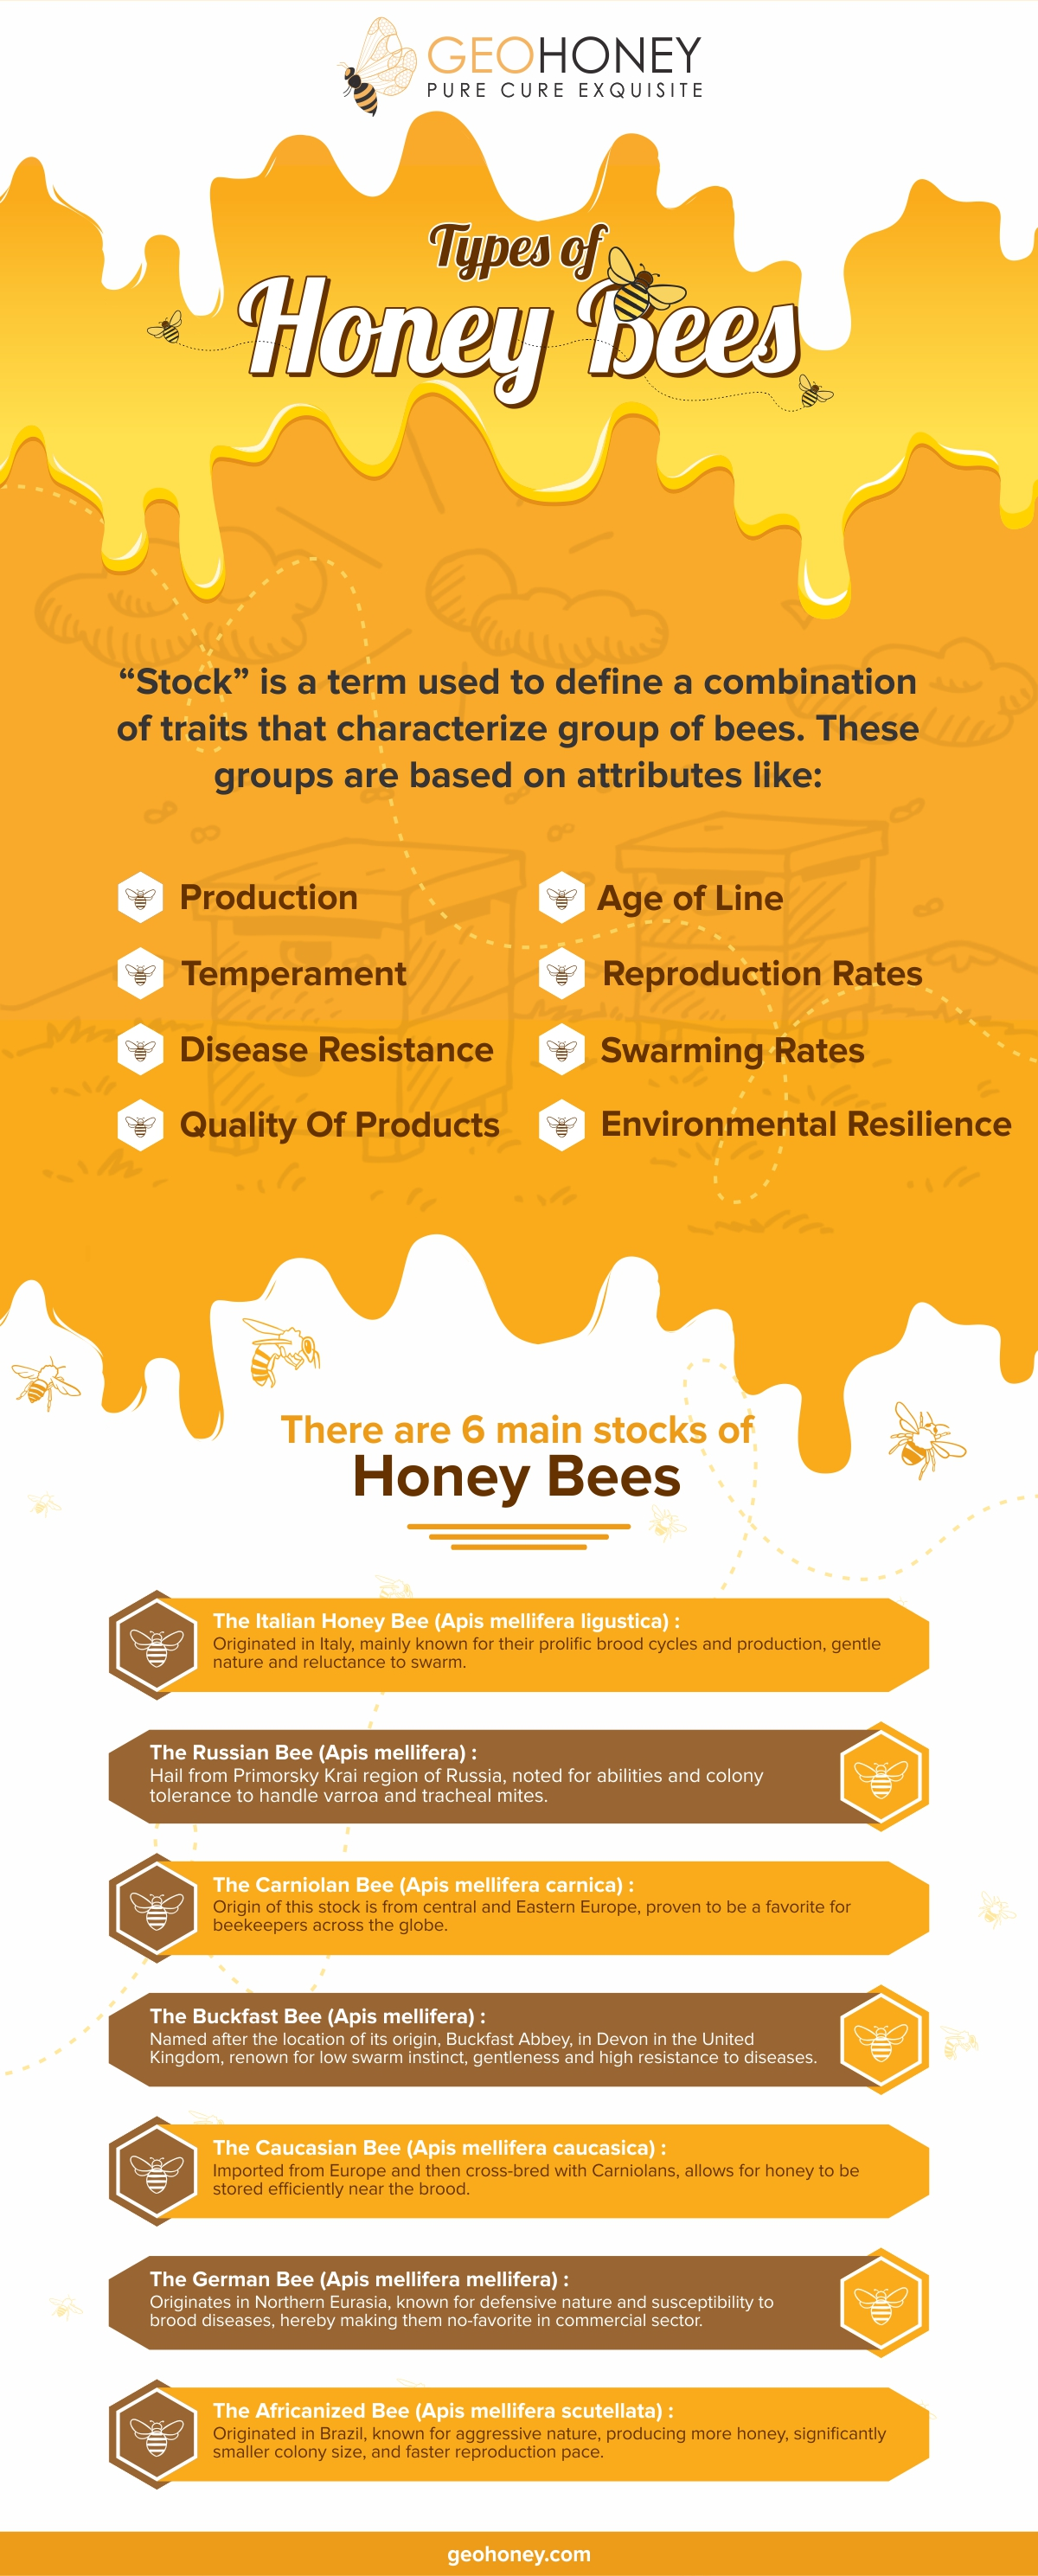 types of honey bees - Geohoney